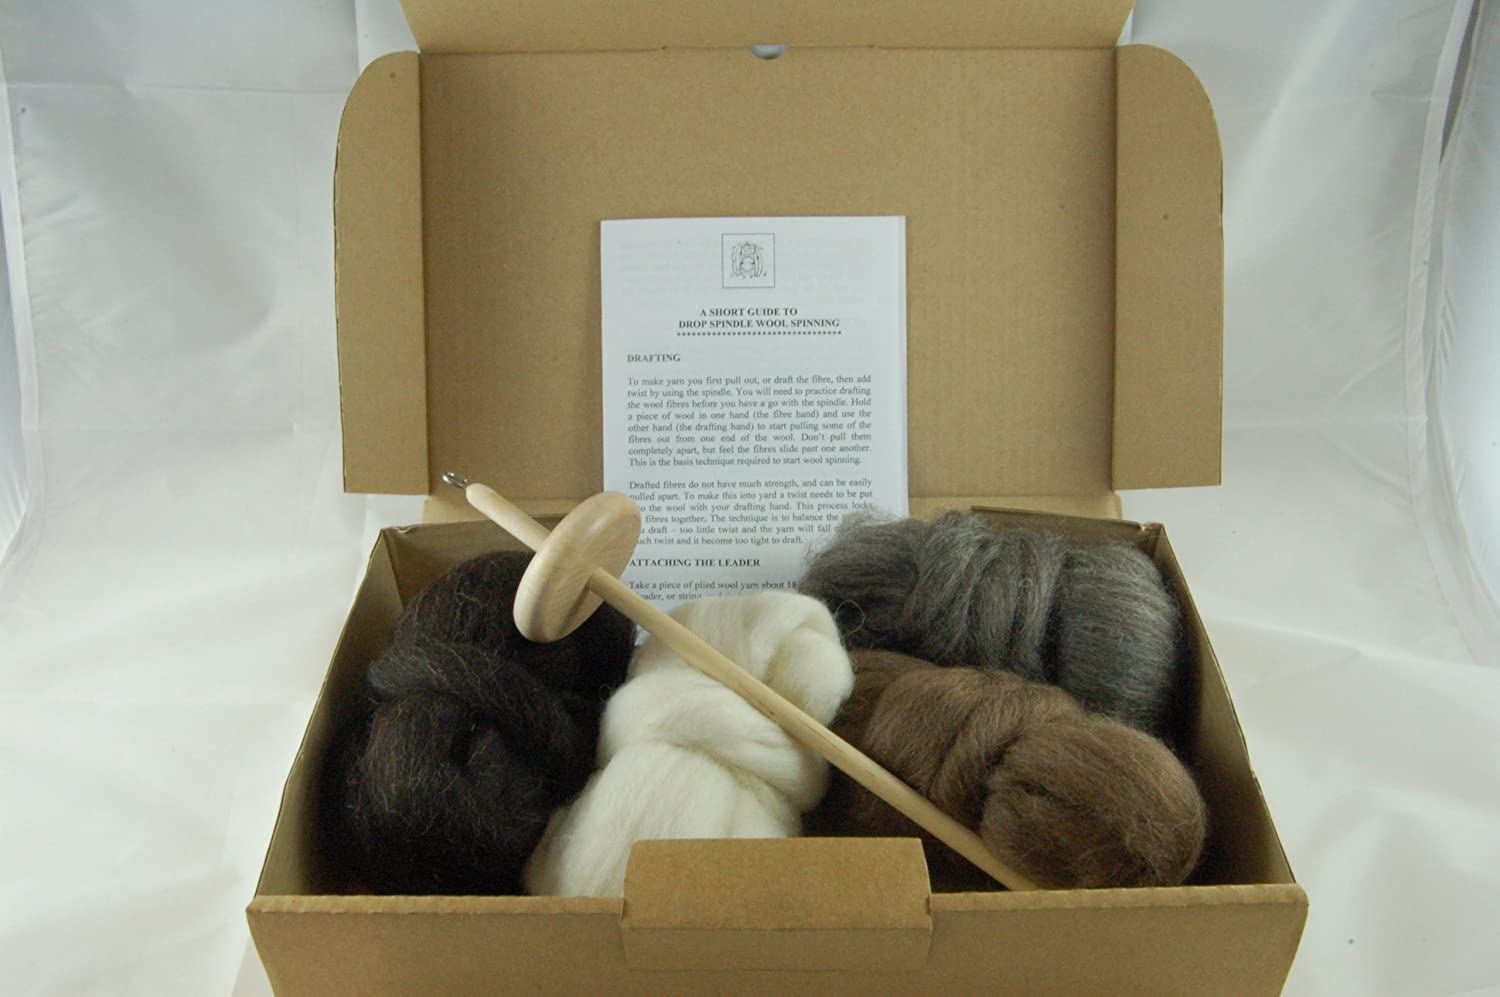 Hand Wool Spinning Starter kit - Includes Drop Spindle, Instructions and 4 Shades of Finnish Sheeps Wool rovings